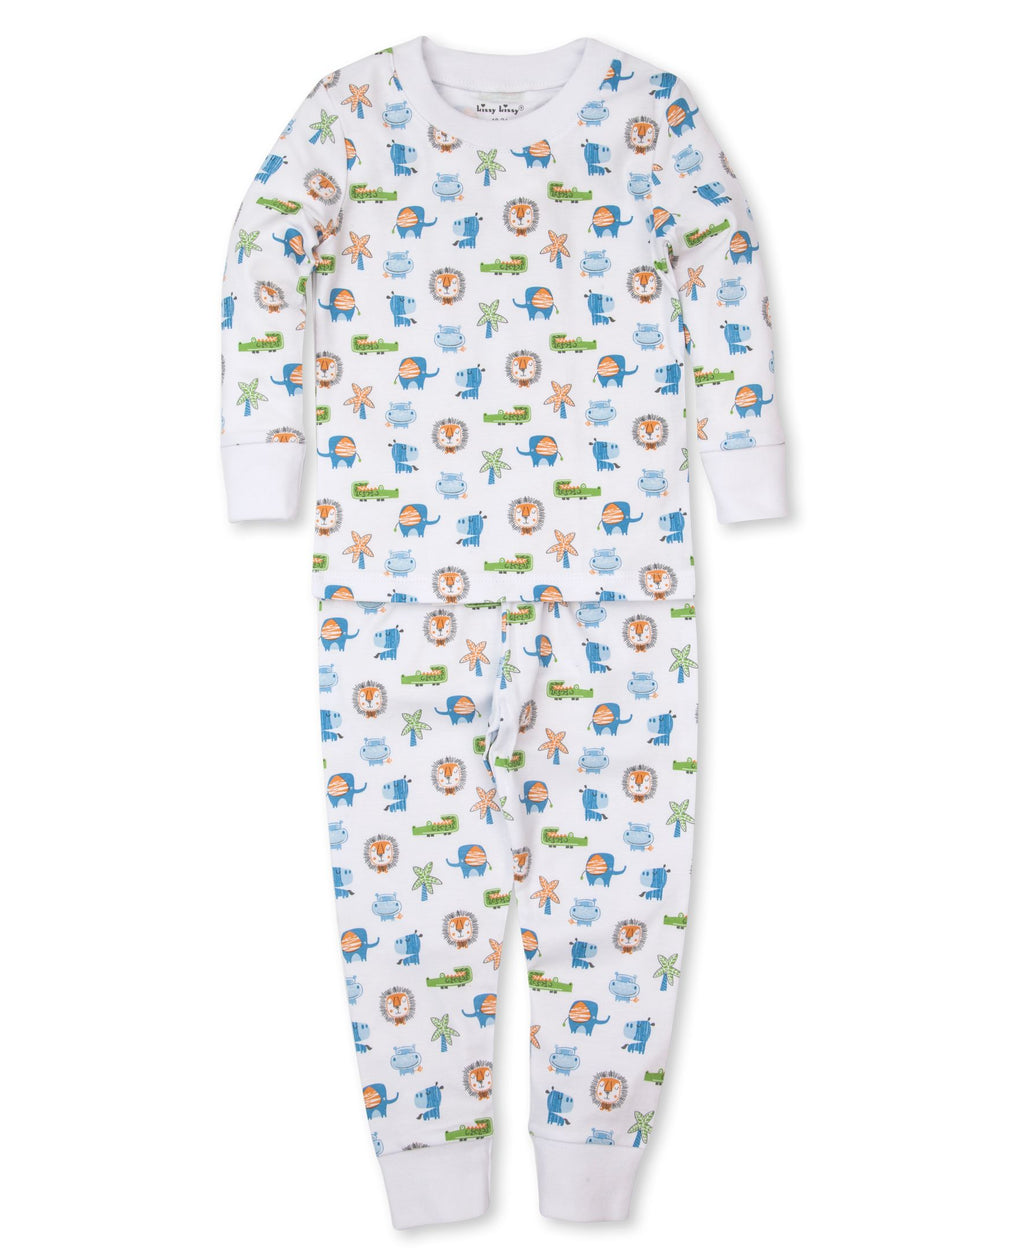 Jungle Antics Toddler Pajama Set